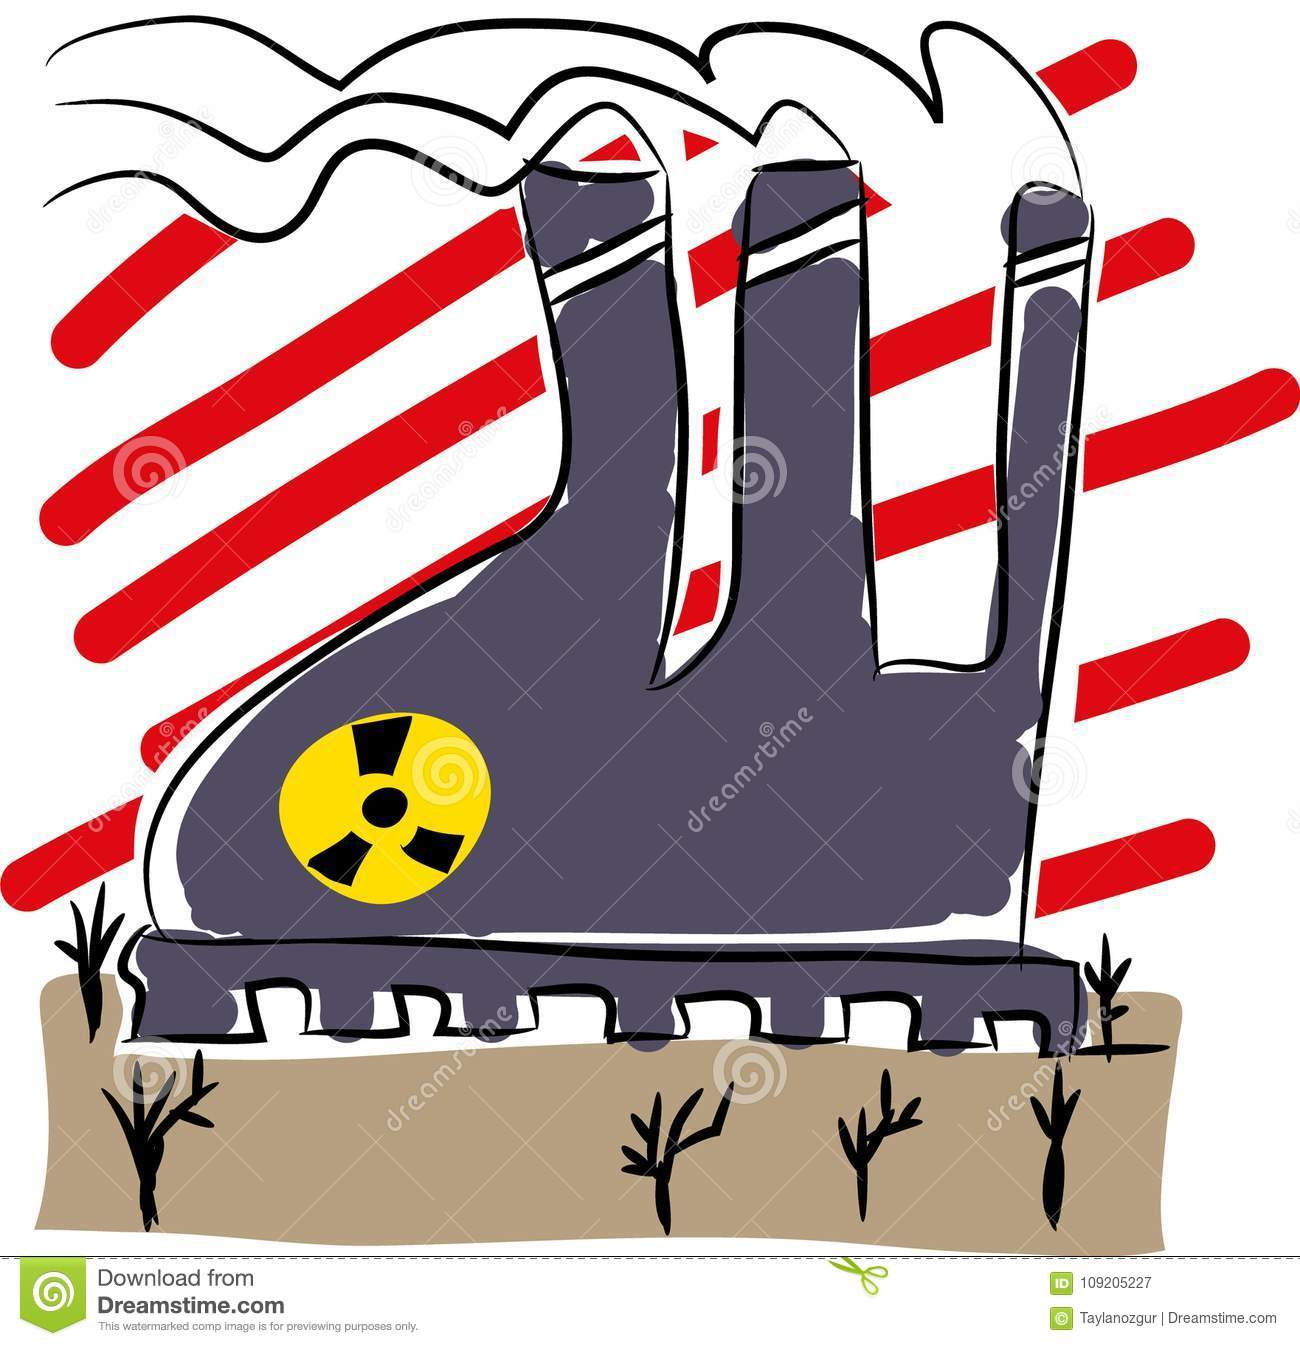 Nuclear energy, Global warming factory emissions.